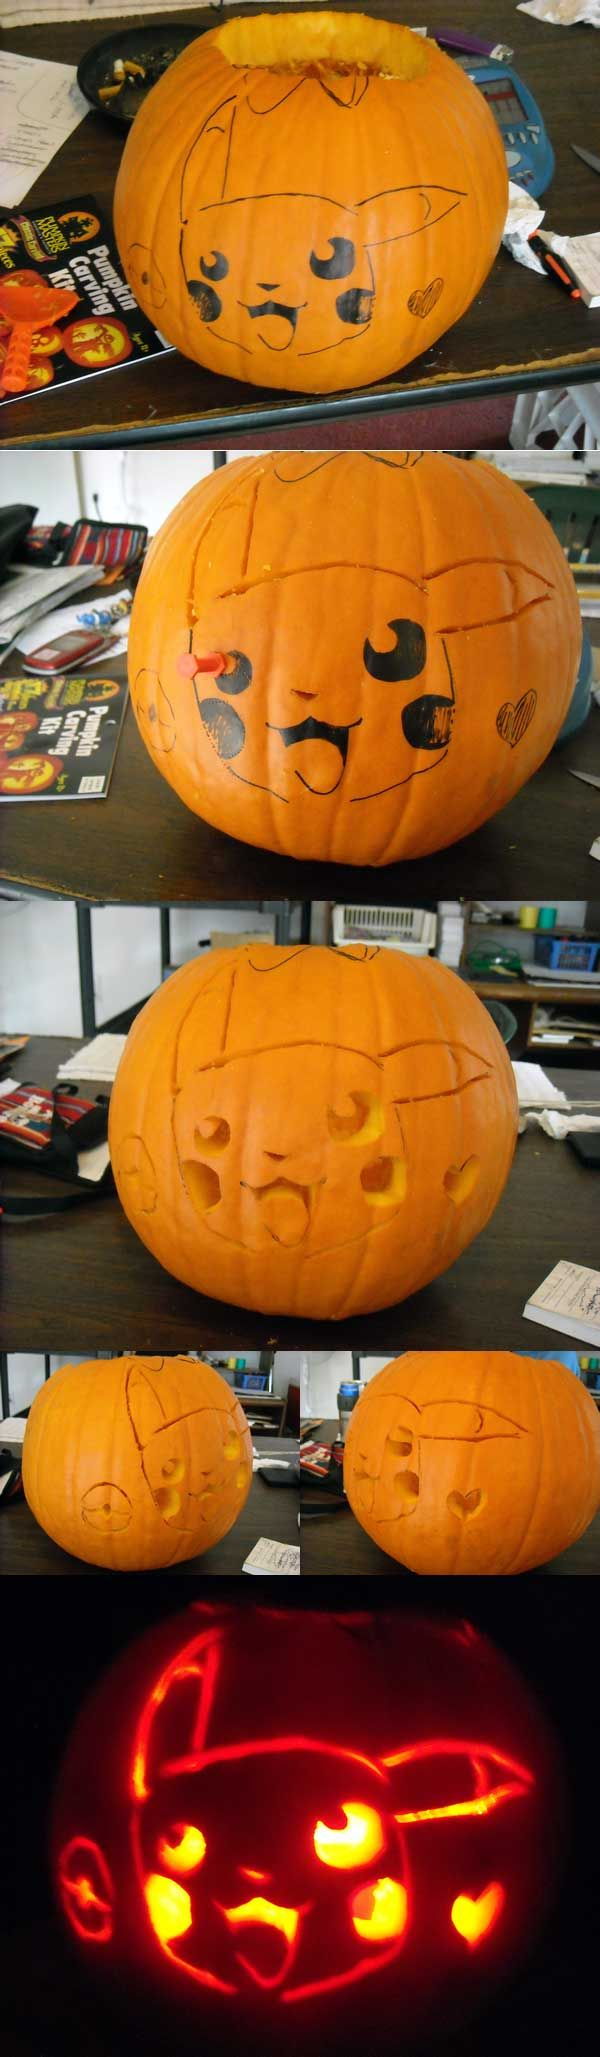 Looks like we'll be carving a Pokemon Pumpkin this year.